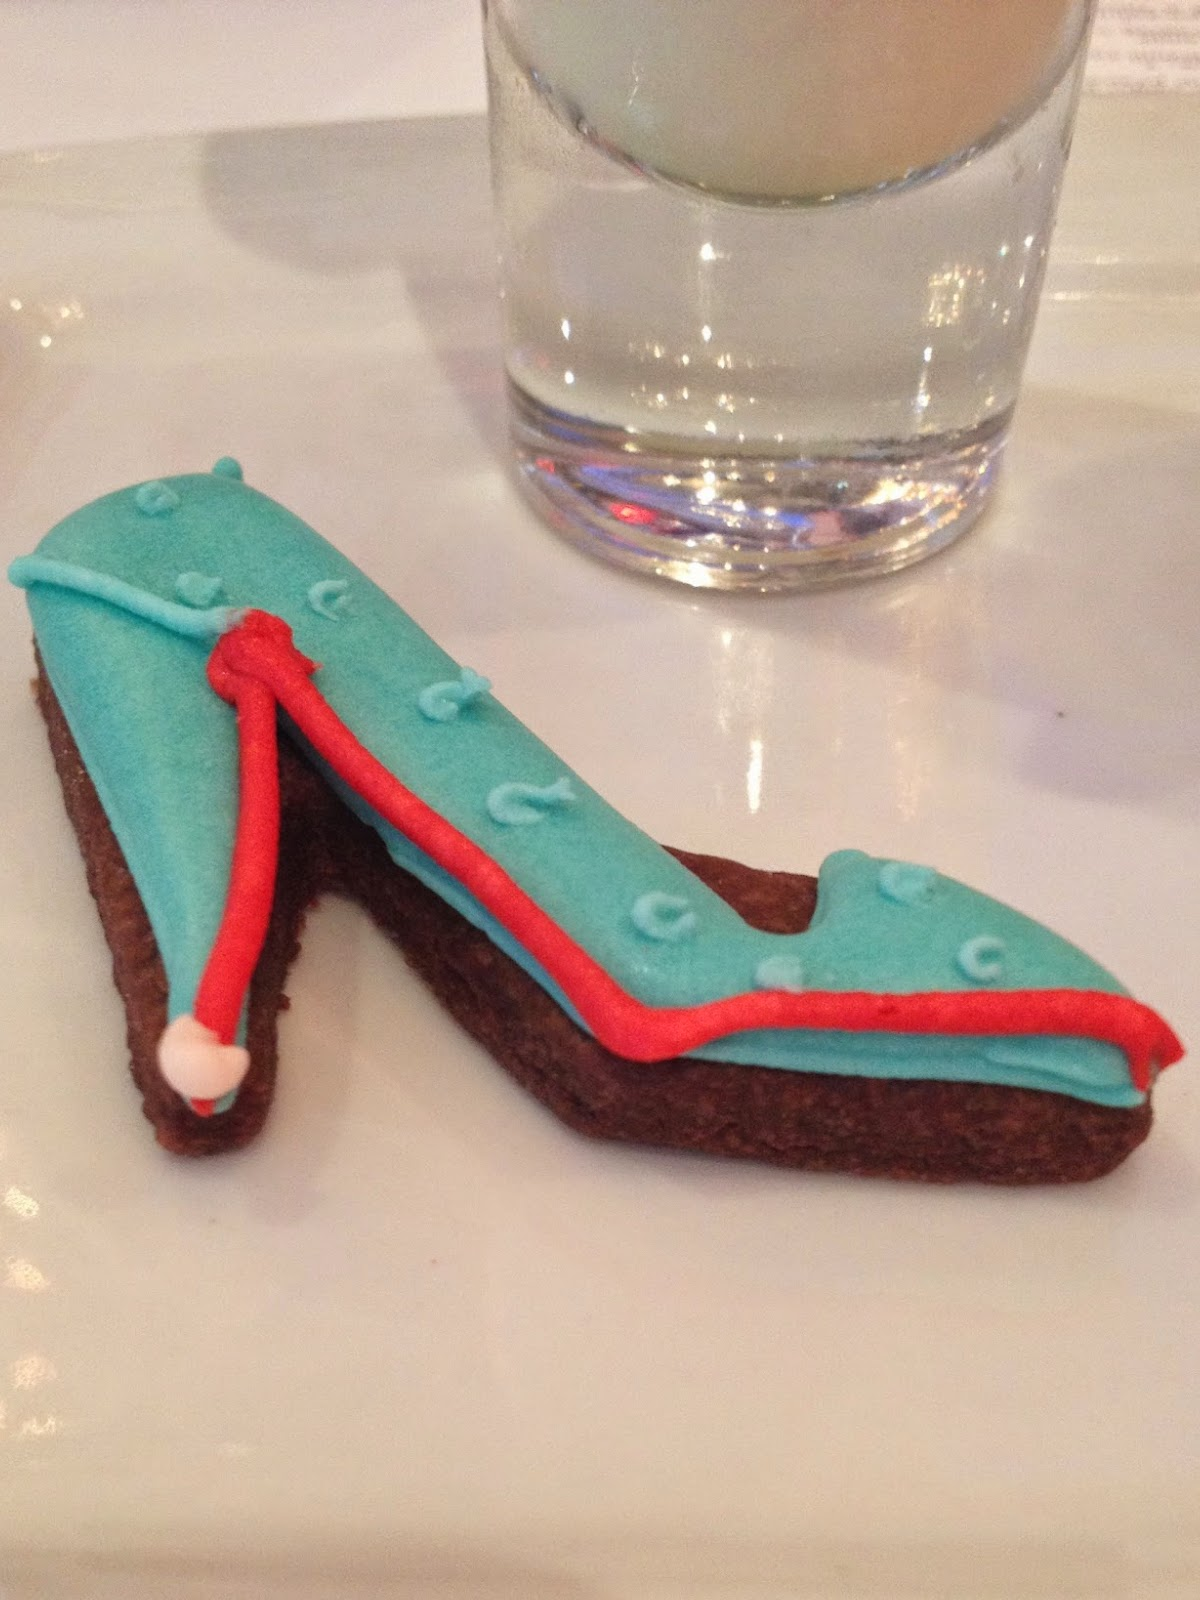 Shoe biscuit for afternoon tea